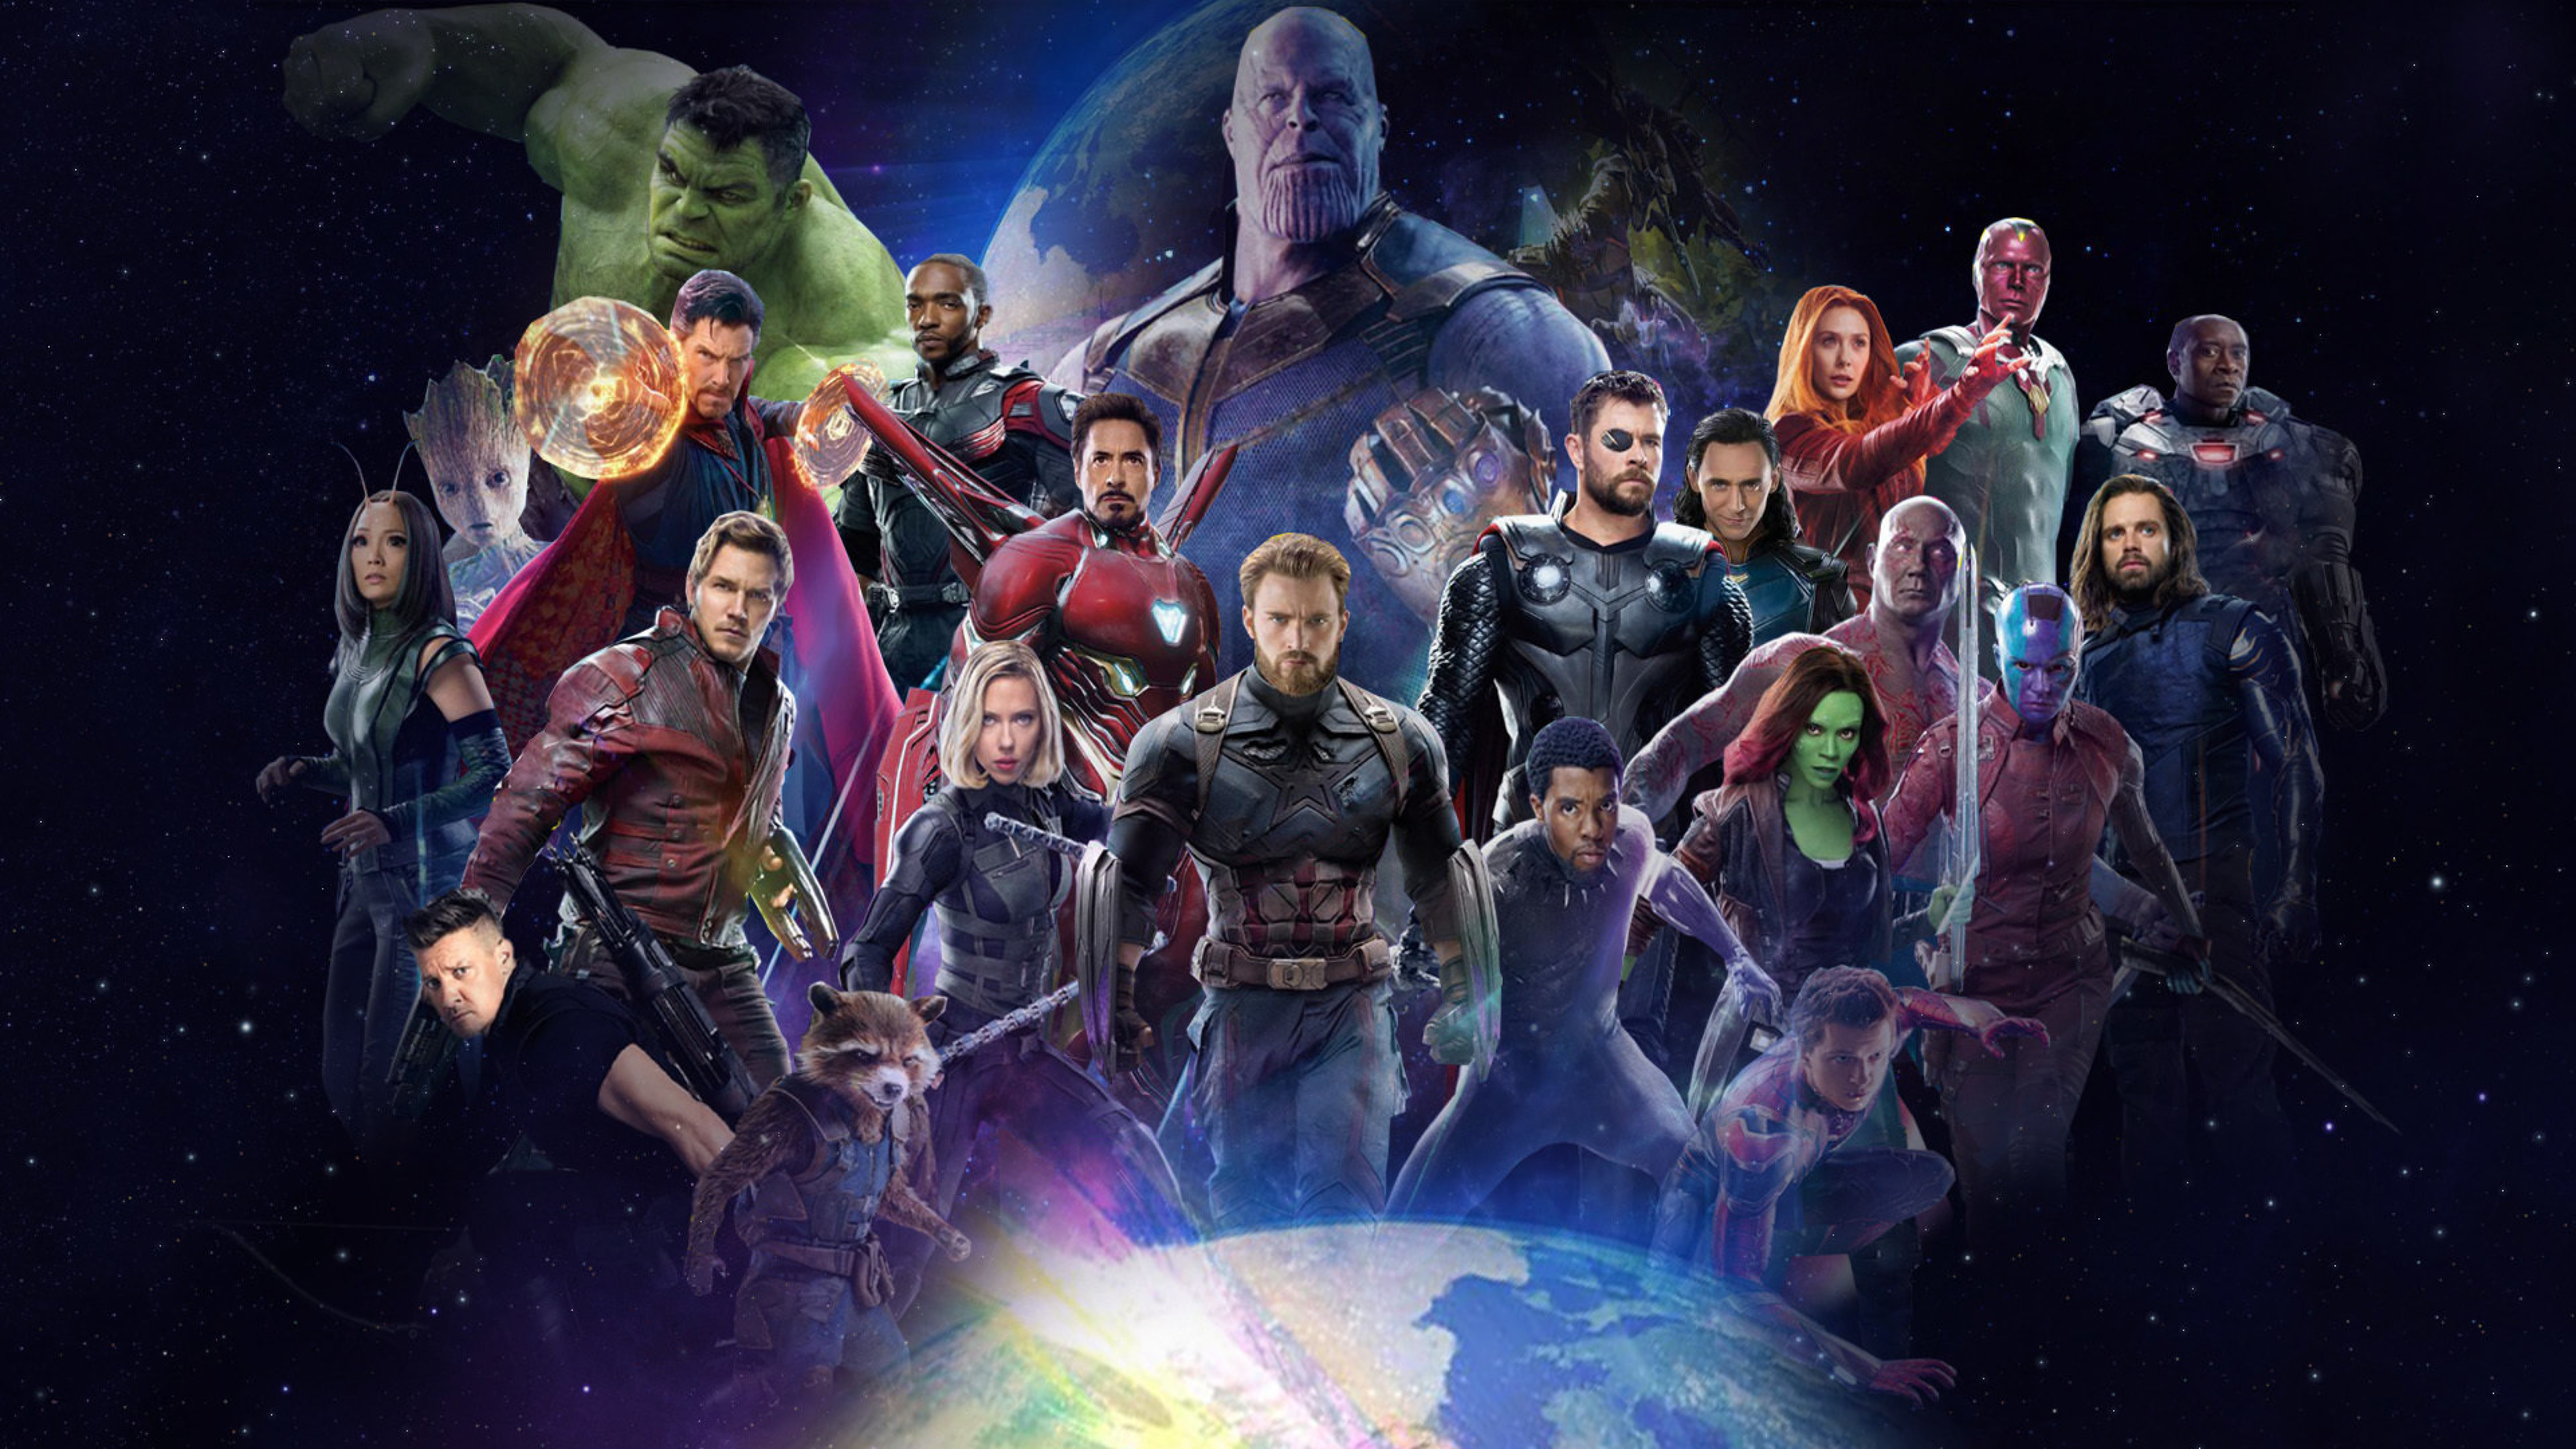 Top 25 Samsung Galaxy S4 Screen Saver Wallpapers: Avengers Infinity War 2018 All Characters Fan Poster, Full